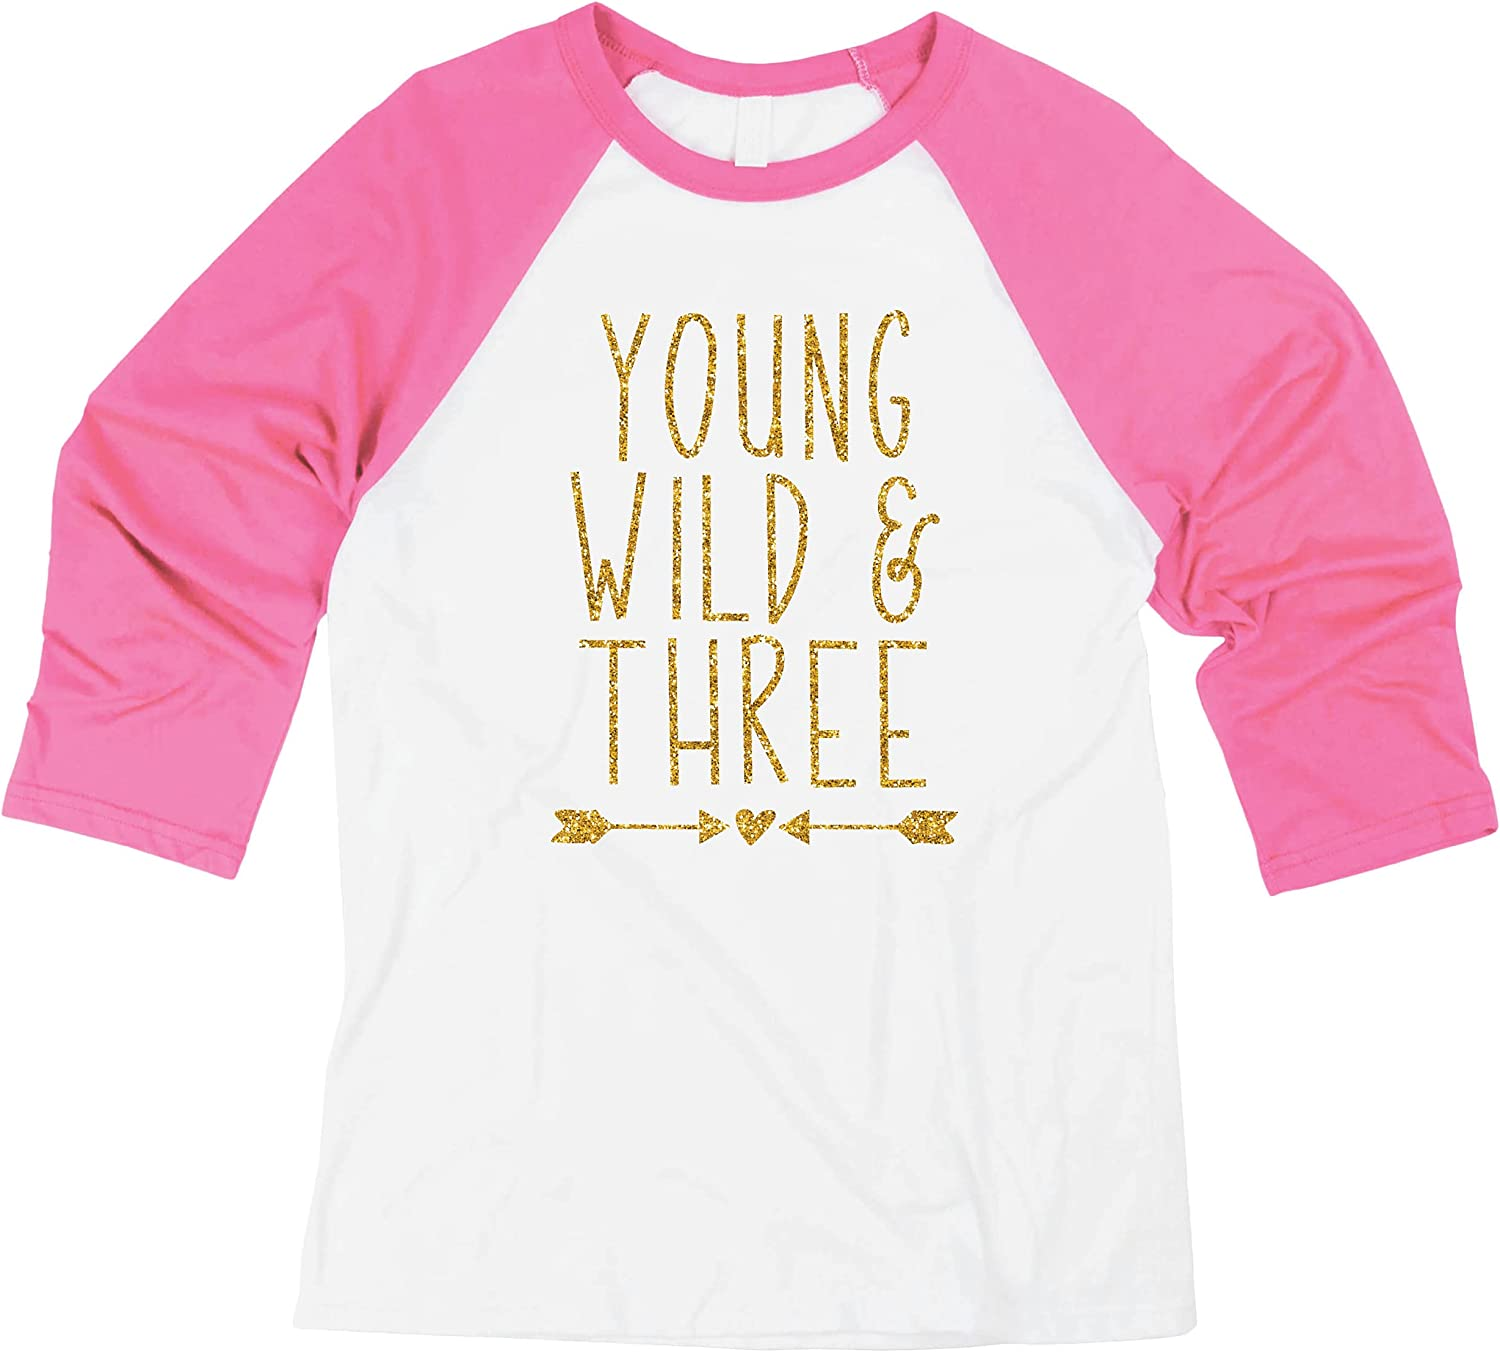 Bump and Beyond Designs 3 Year Old Birthday Shirt Girl Third Birthday Outfit: Clothing, Shoes & Jewelry